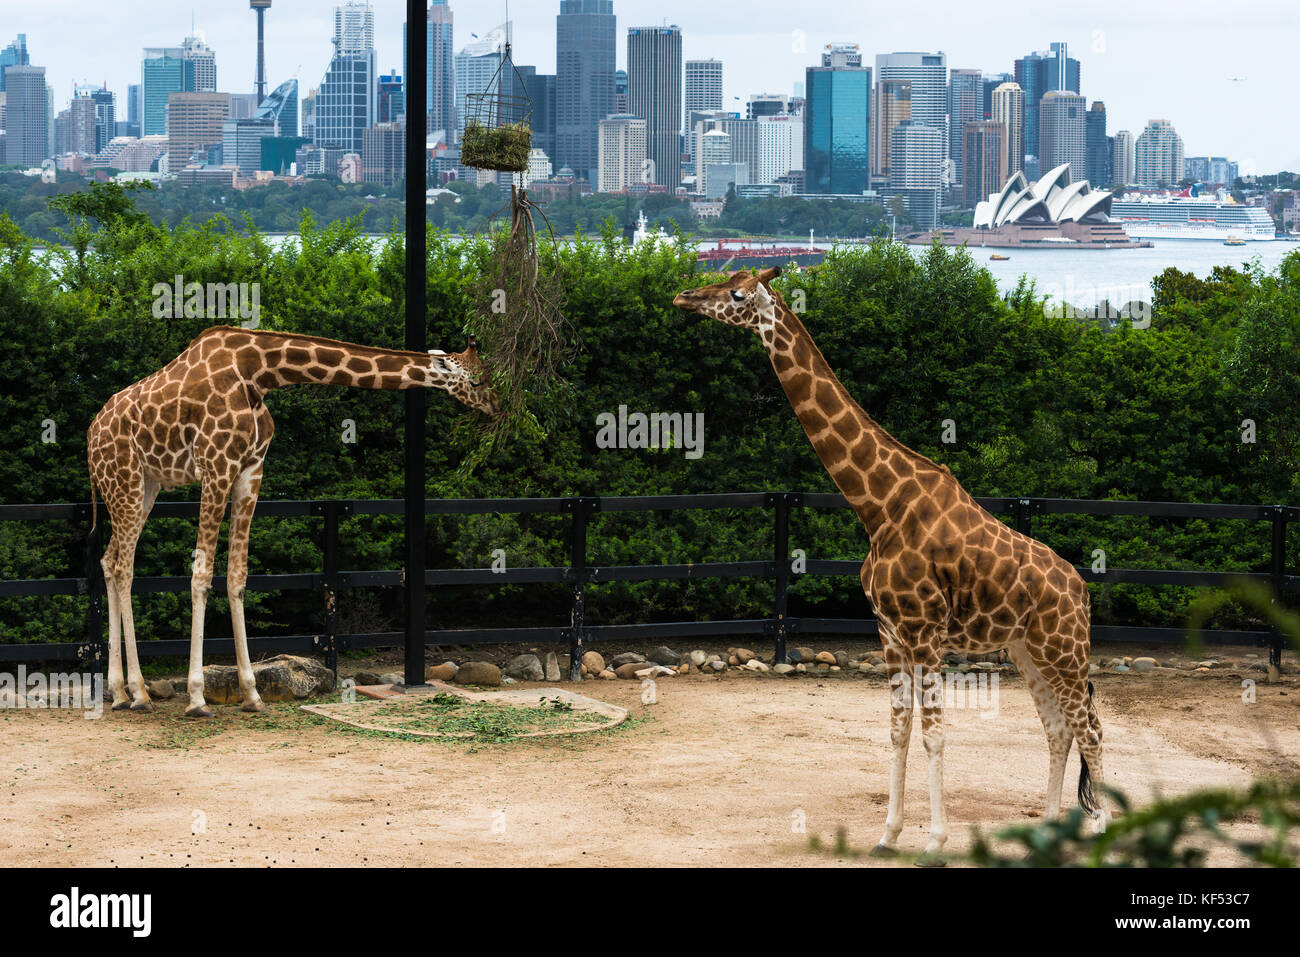 Tarronga zoo's Giraffes with Sydney city skyline to the rear. New South Wales, Australia. - Stock Image